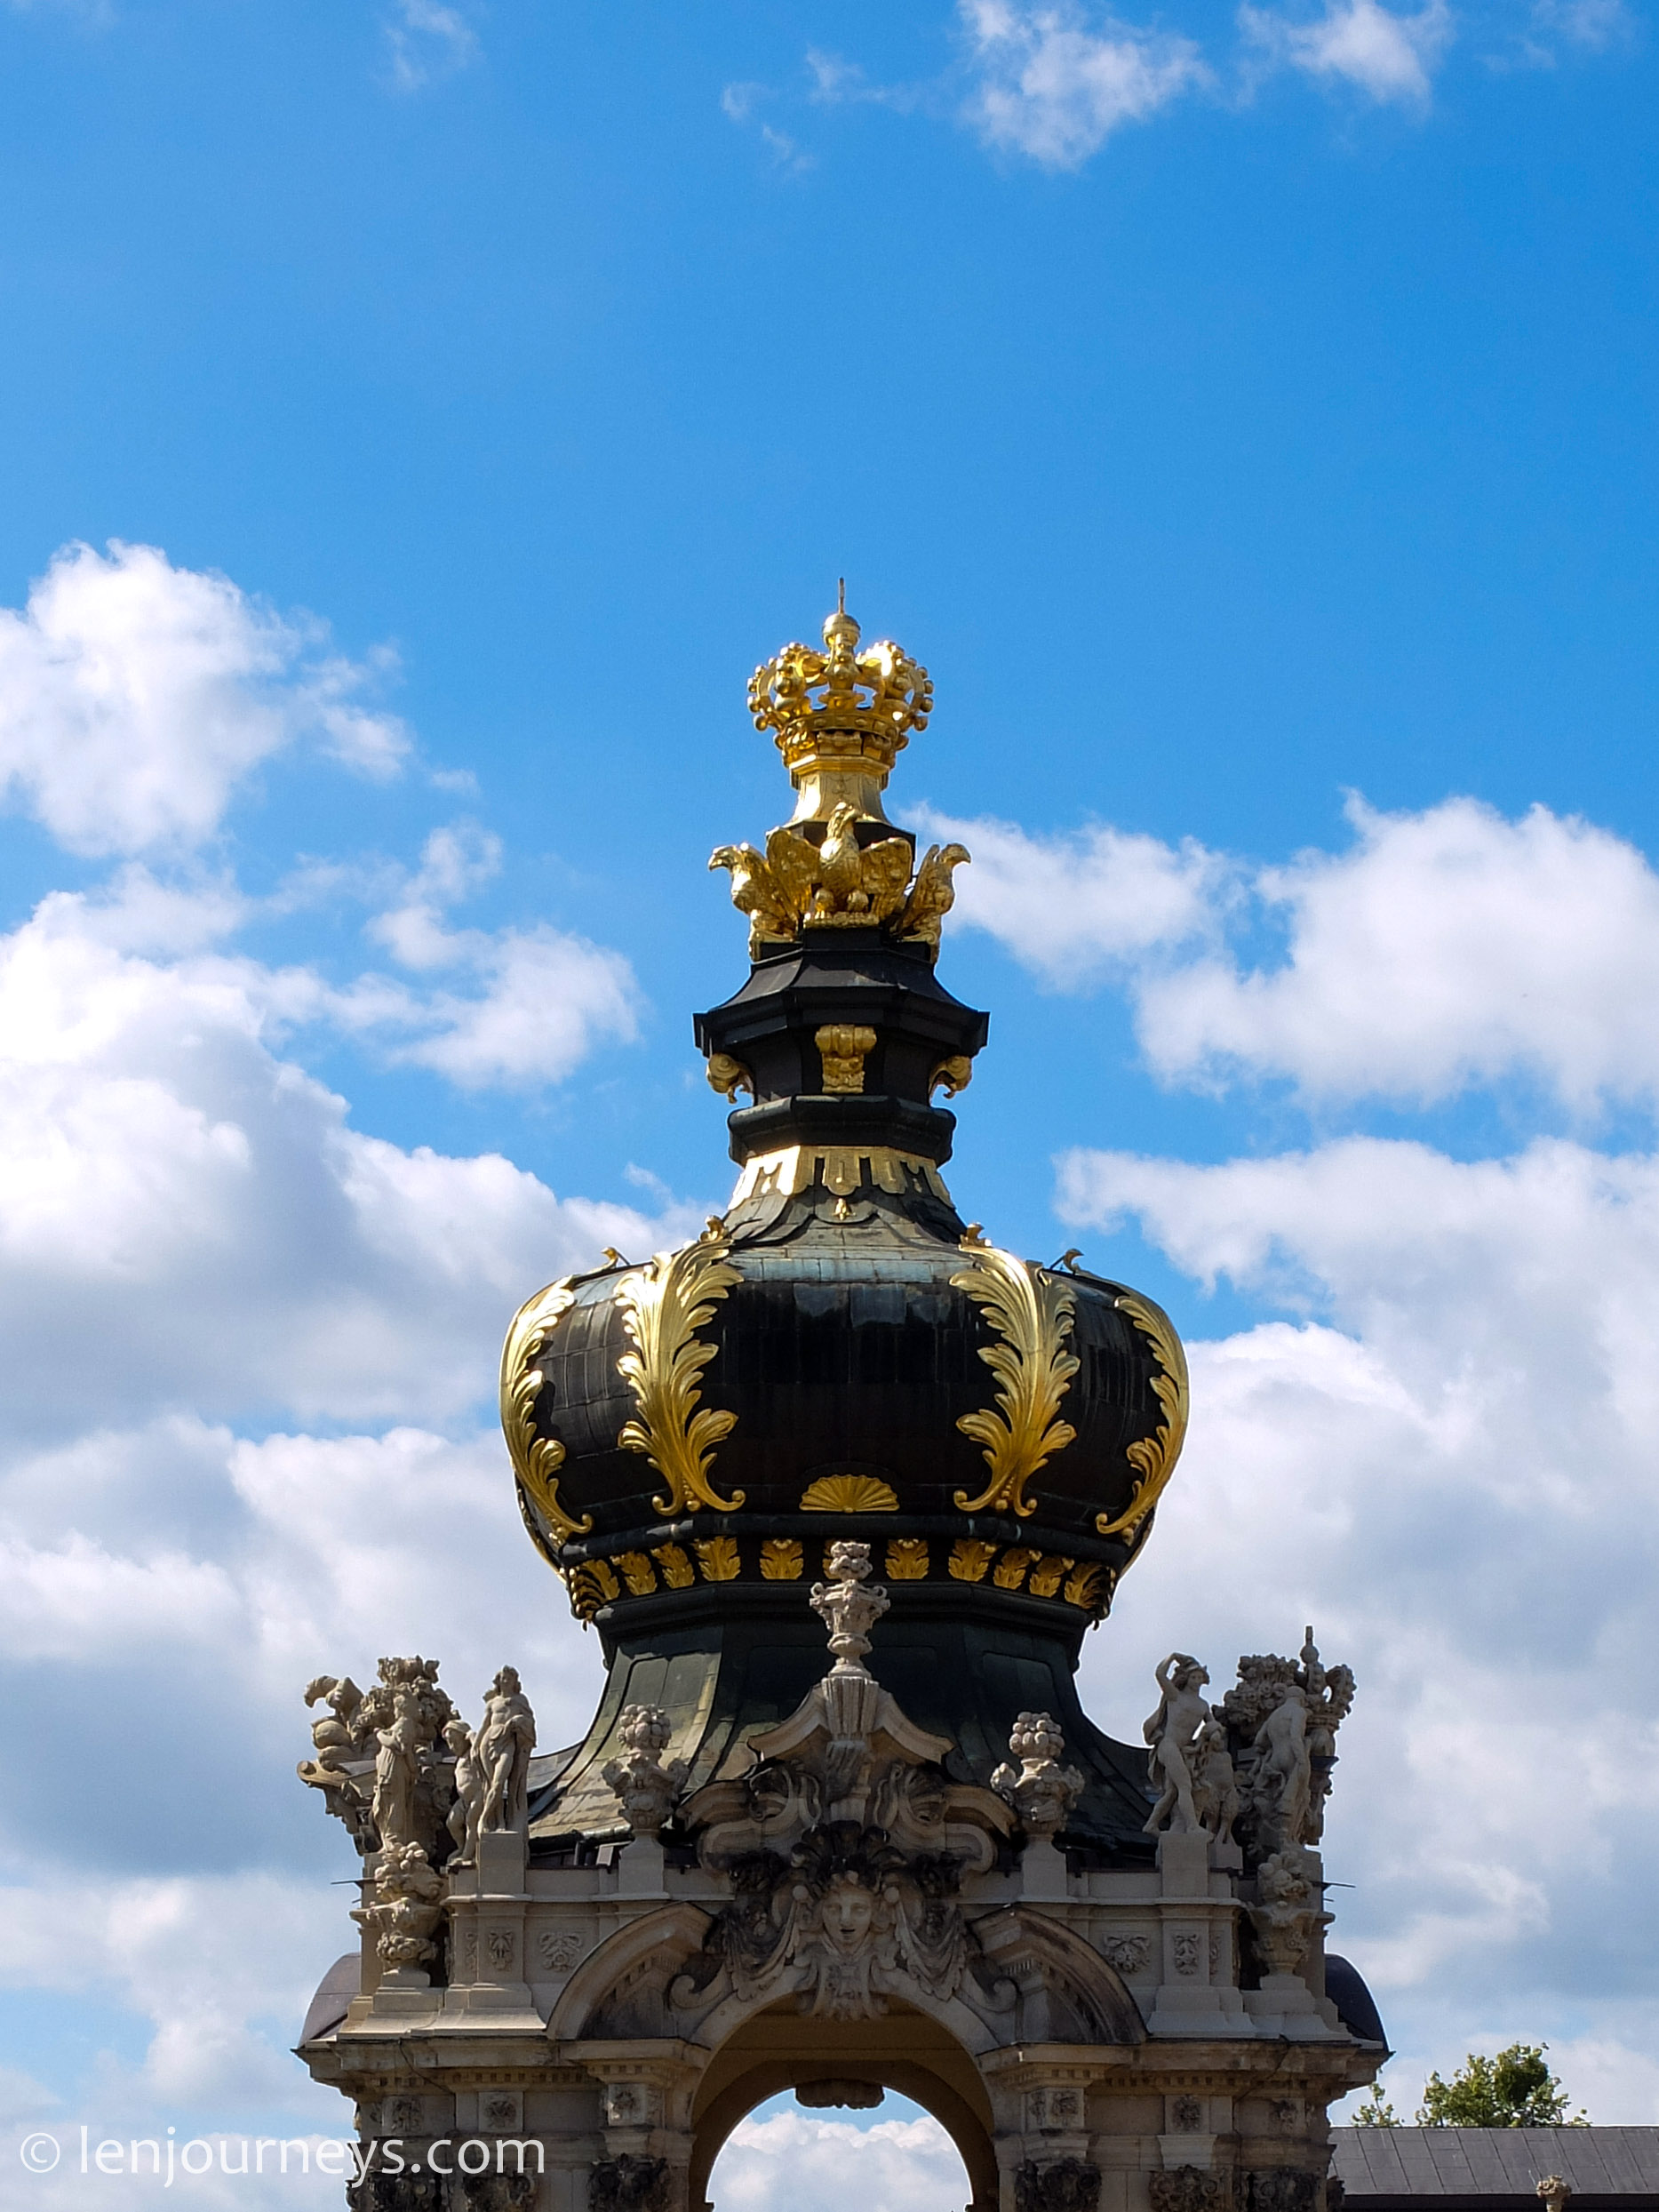 Ornaments in Zwinger Palace